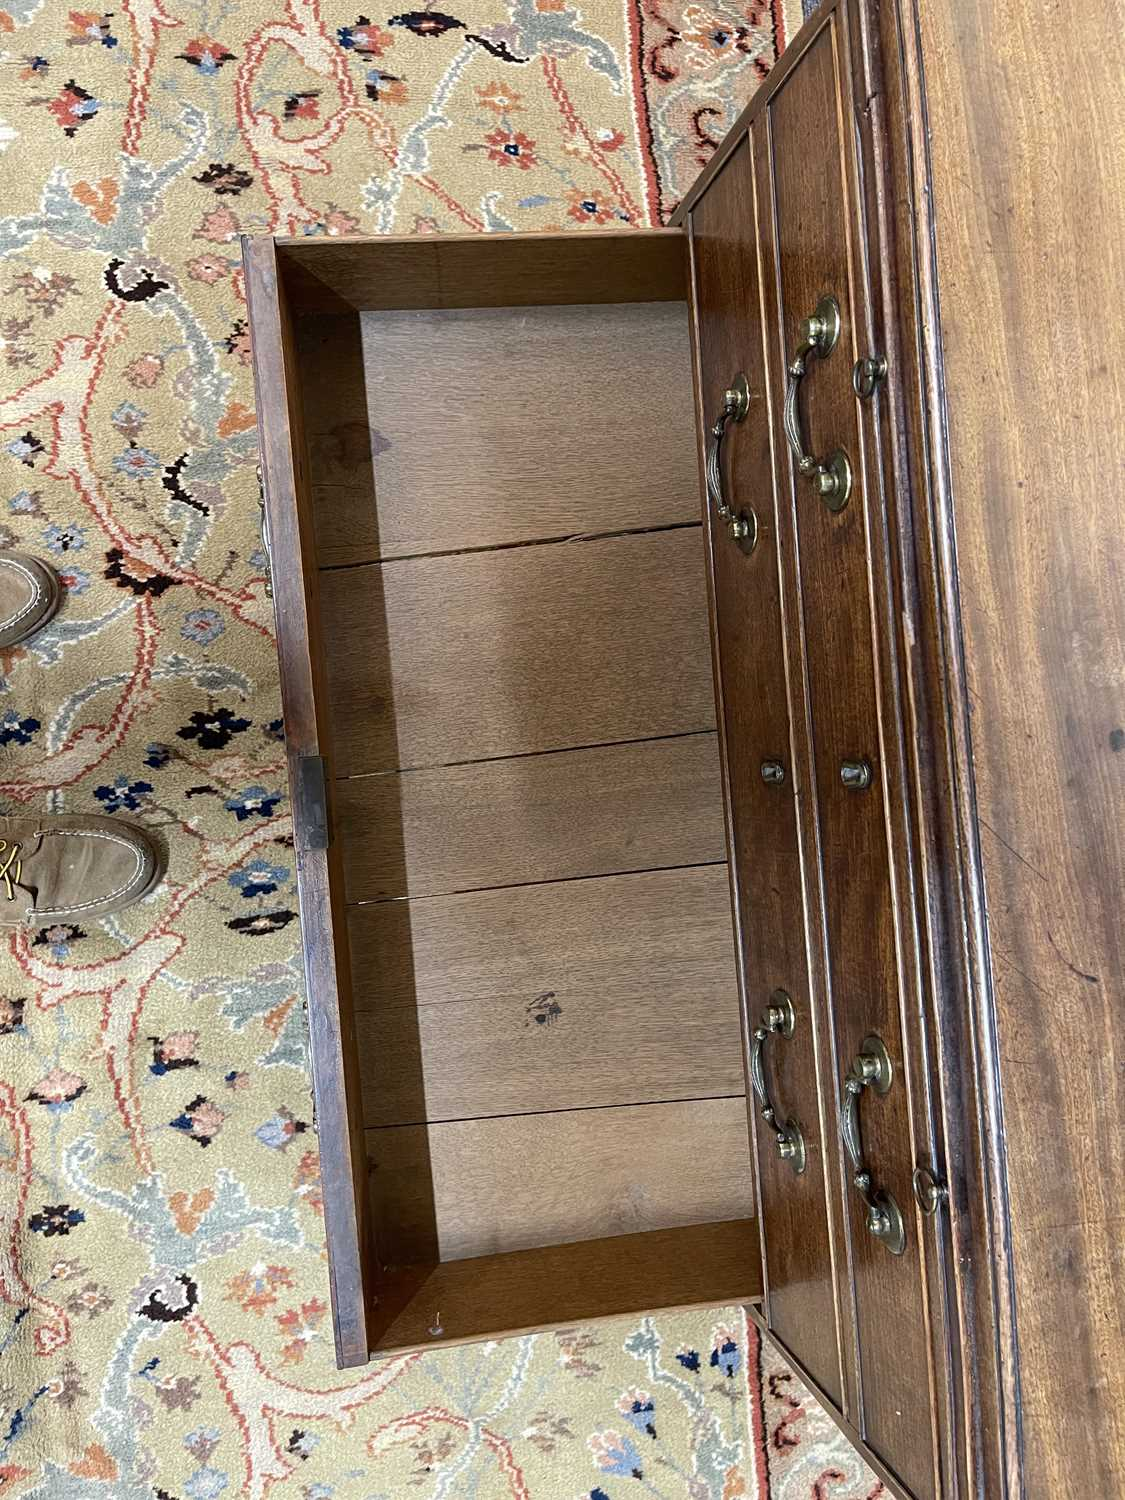 A George III mahogany caddy-top chest of drawers, - Image 19 of 48